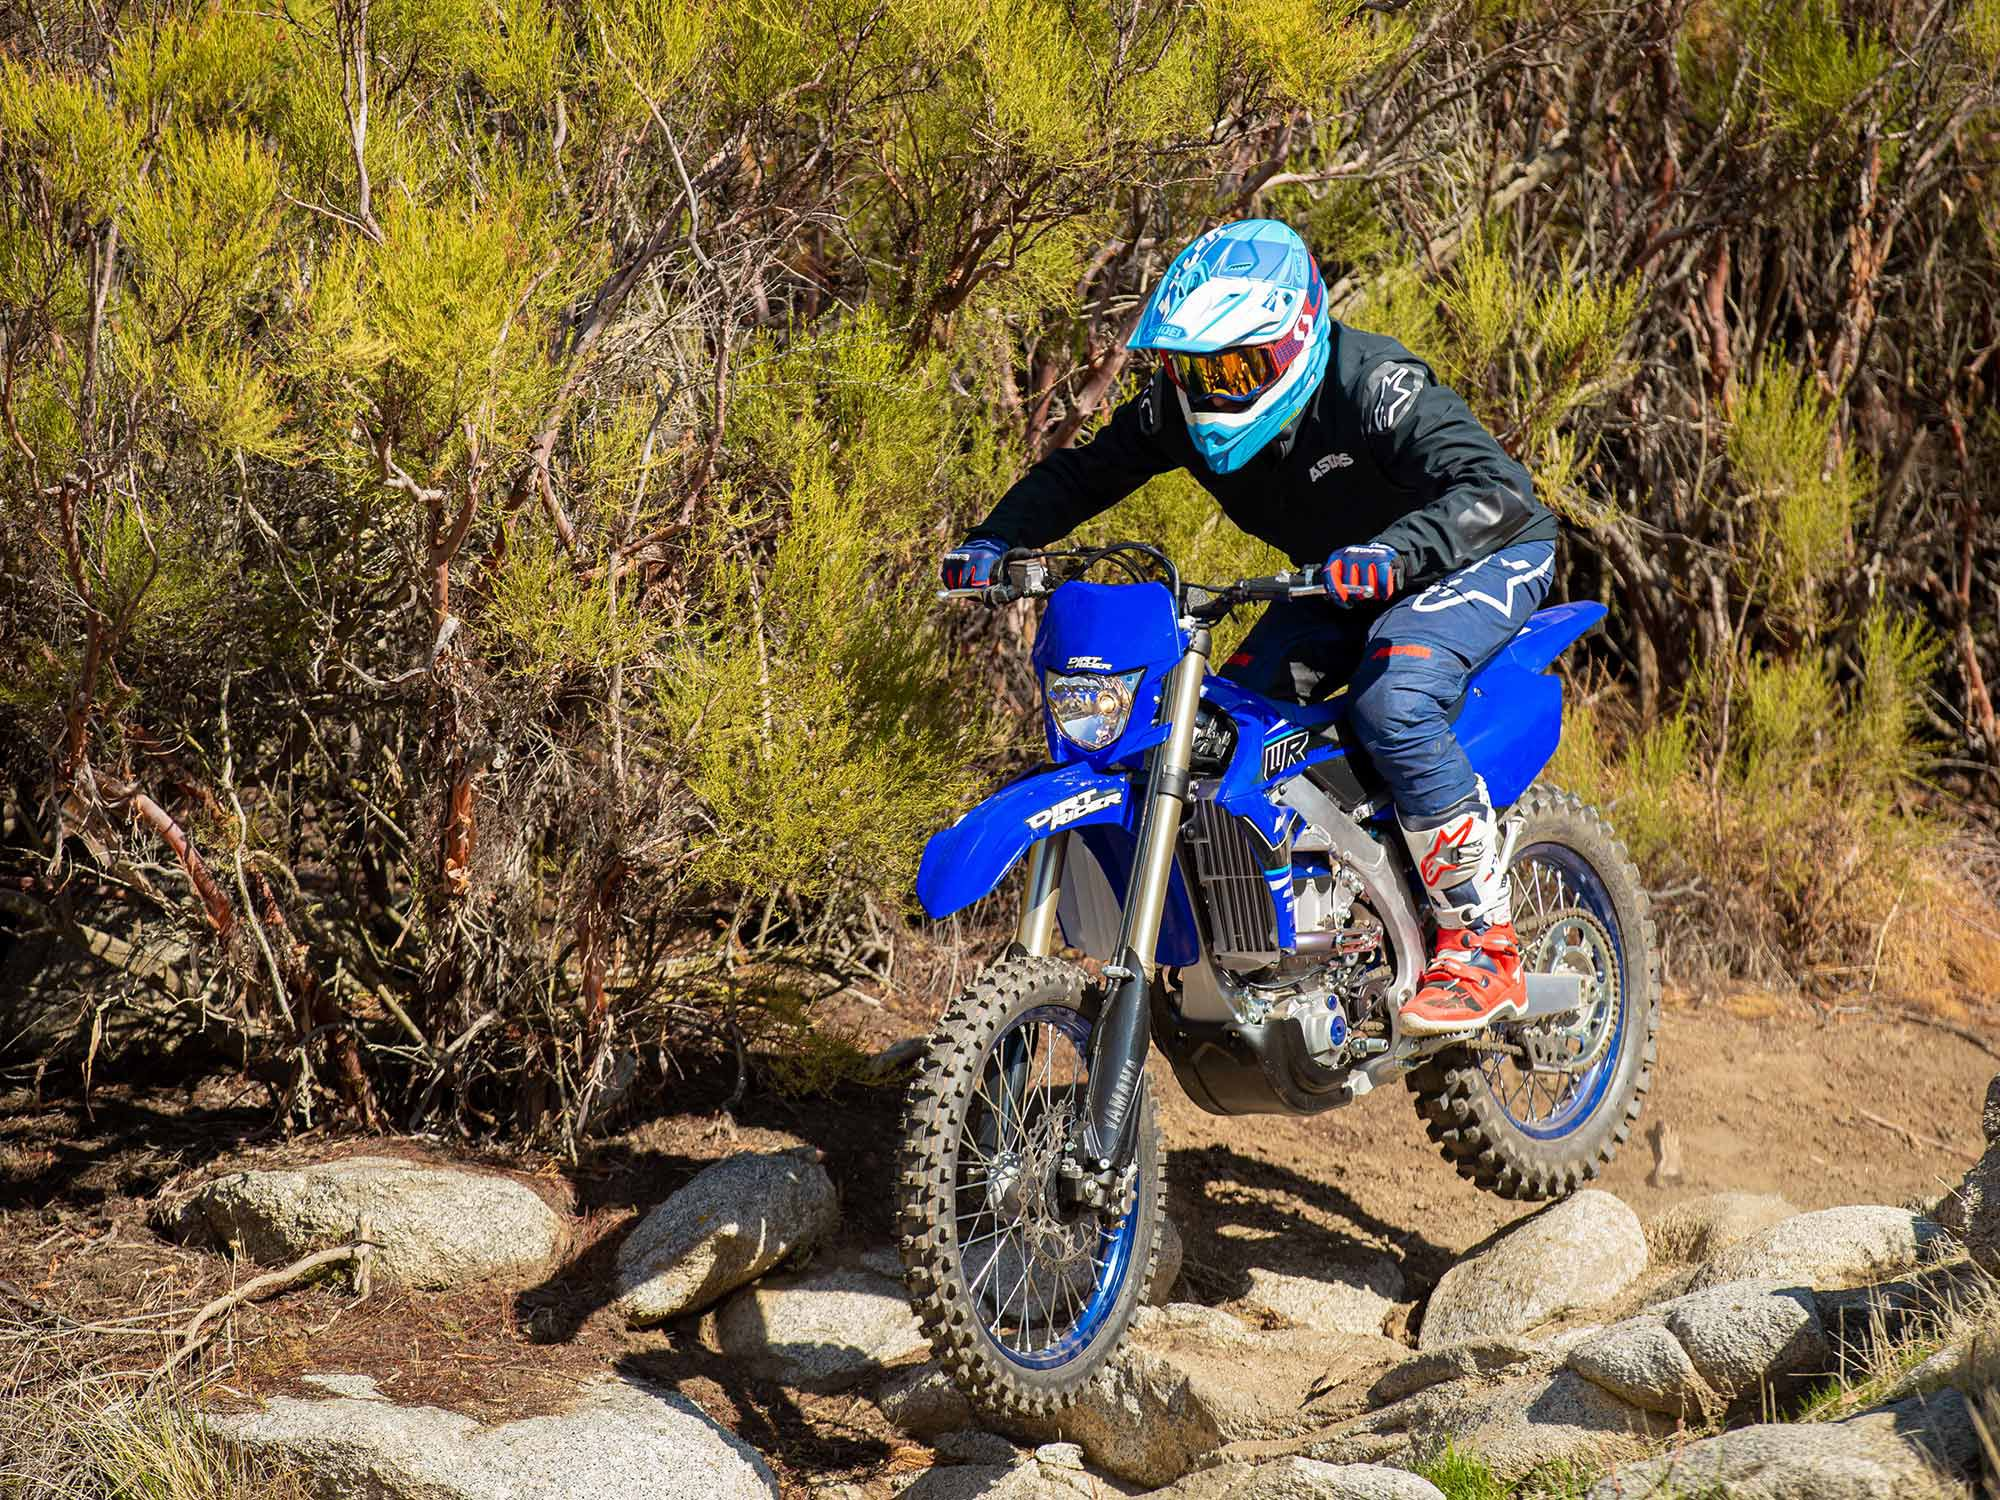 2021 Yamaha WR250F Review